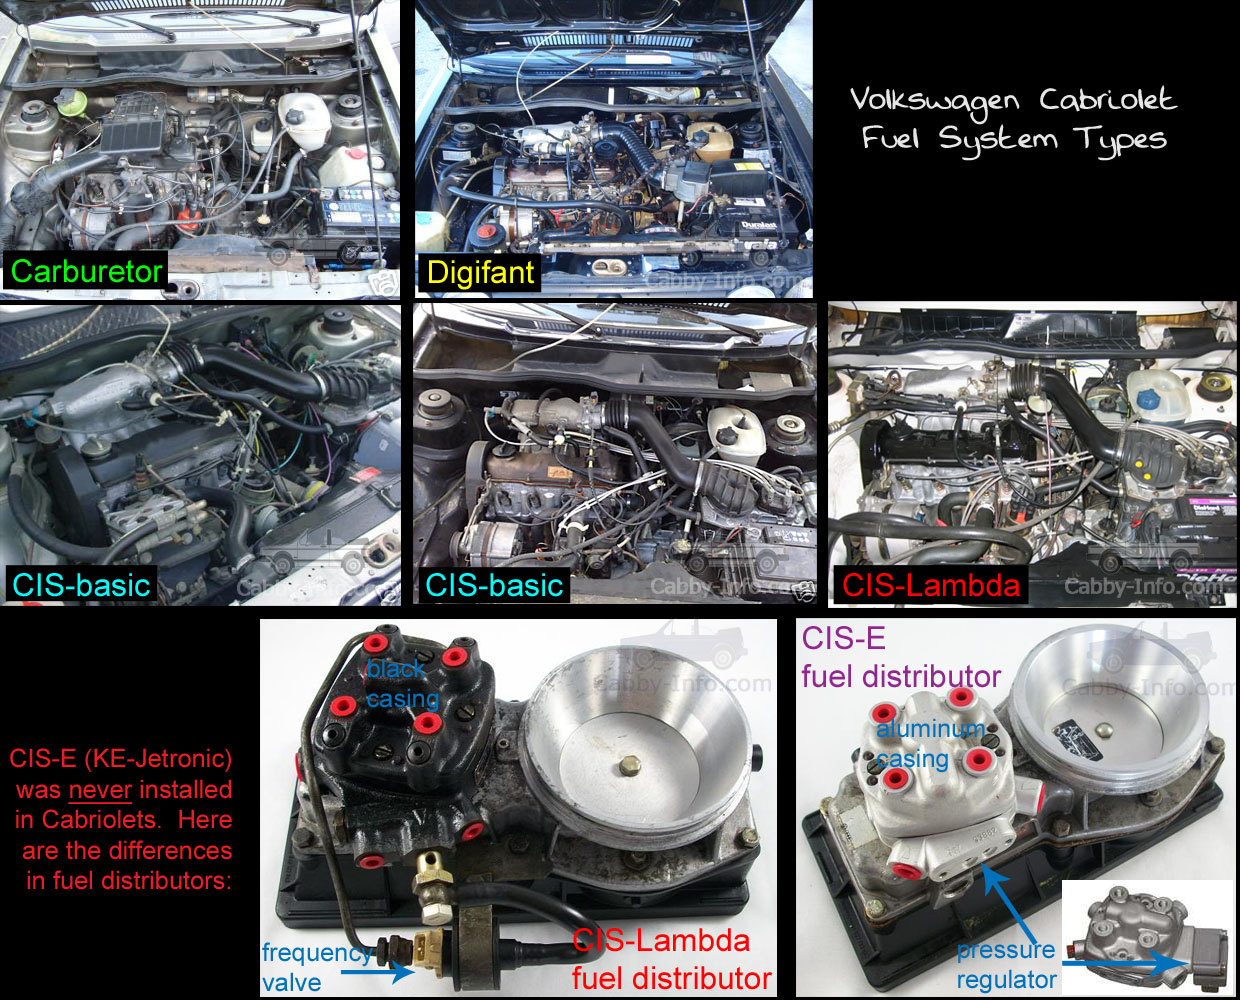 SystemDifferences vwvortex com cis will not stay running wiring diagram 1987 vw cabriolet at bayanpartner.co